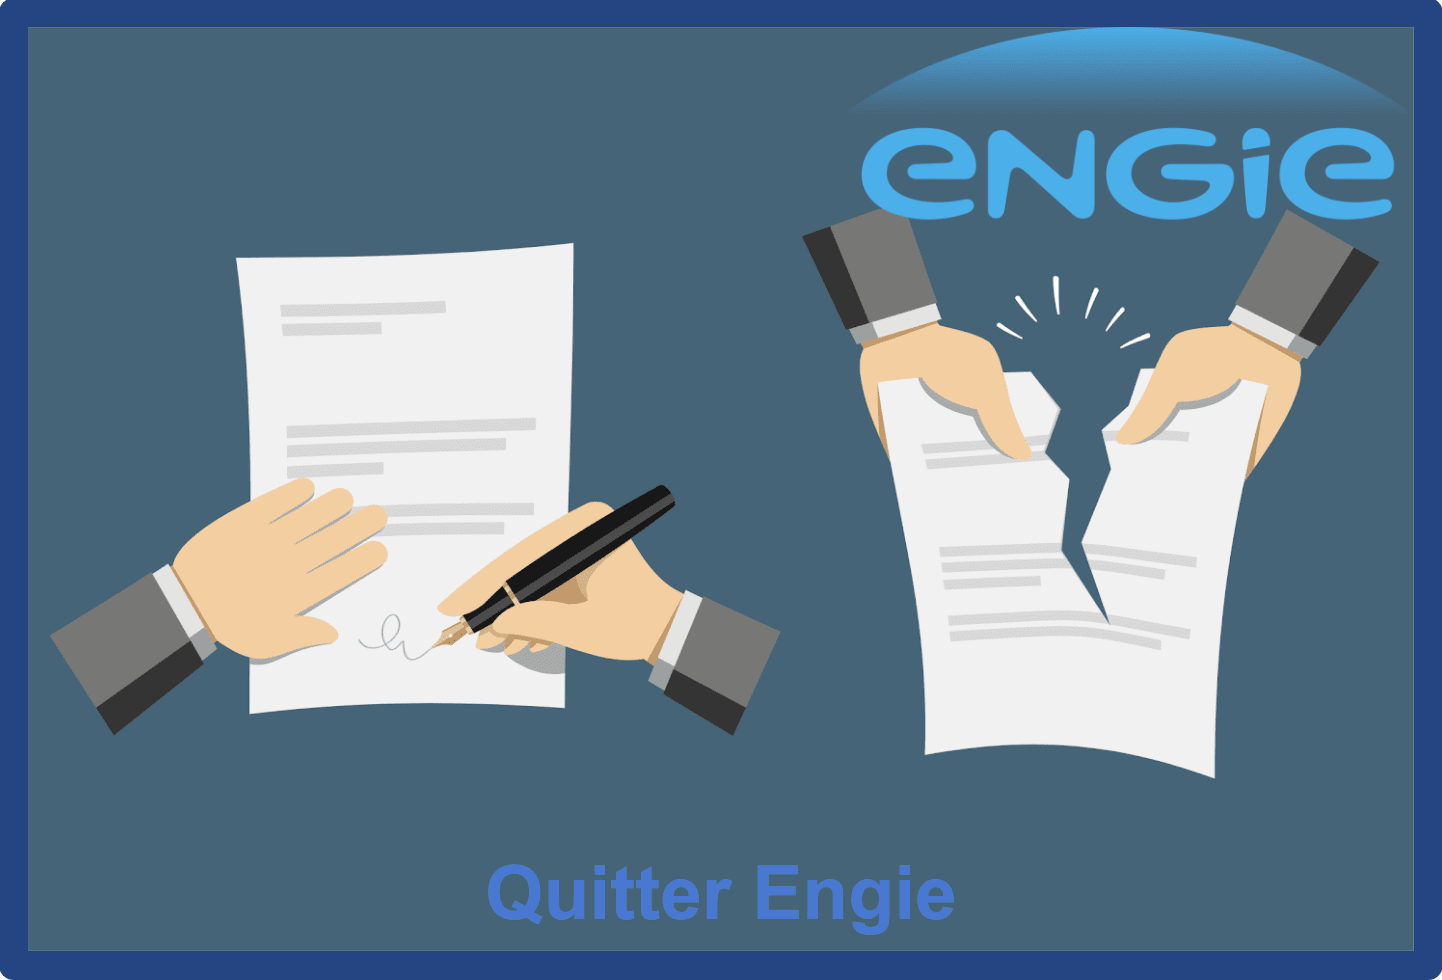 Quitter engie